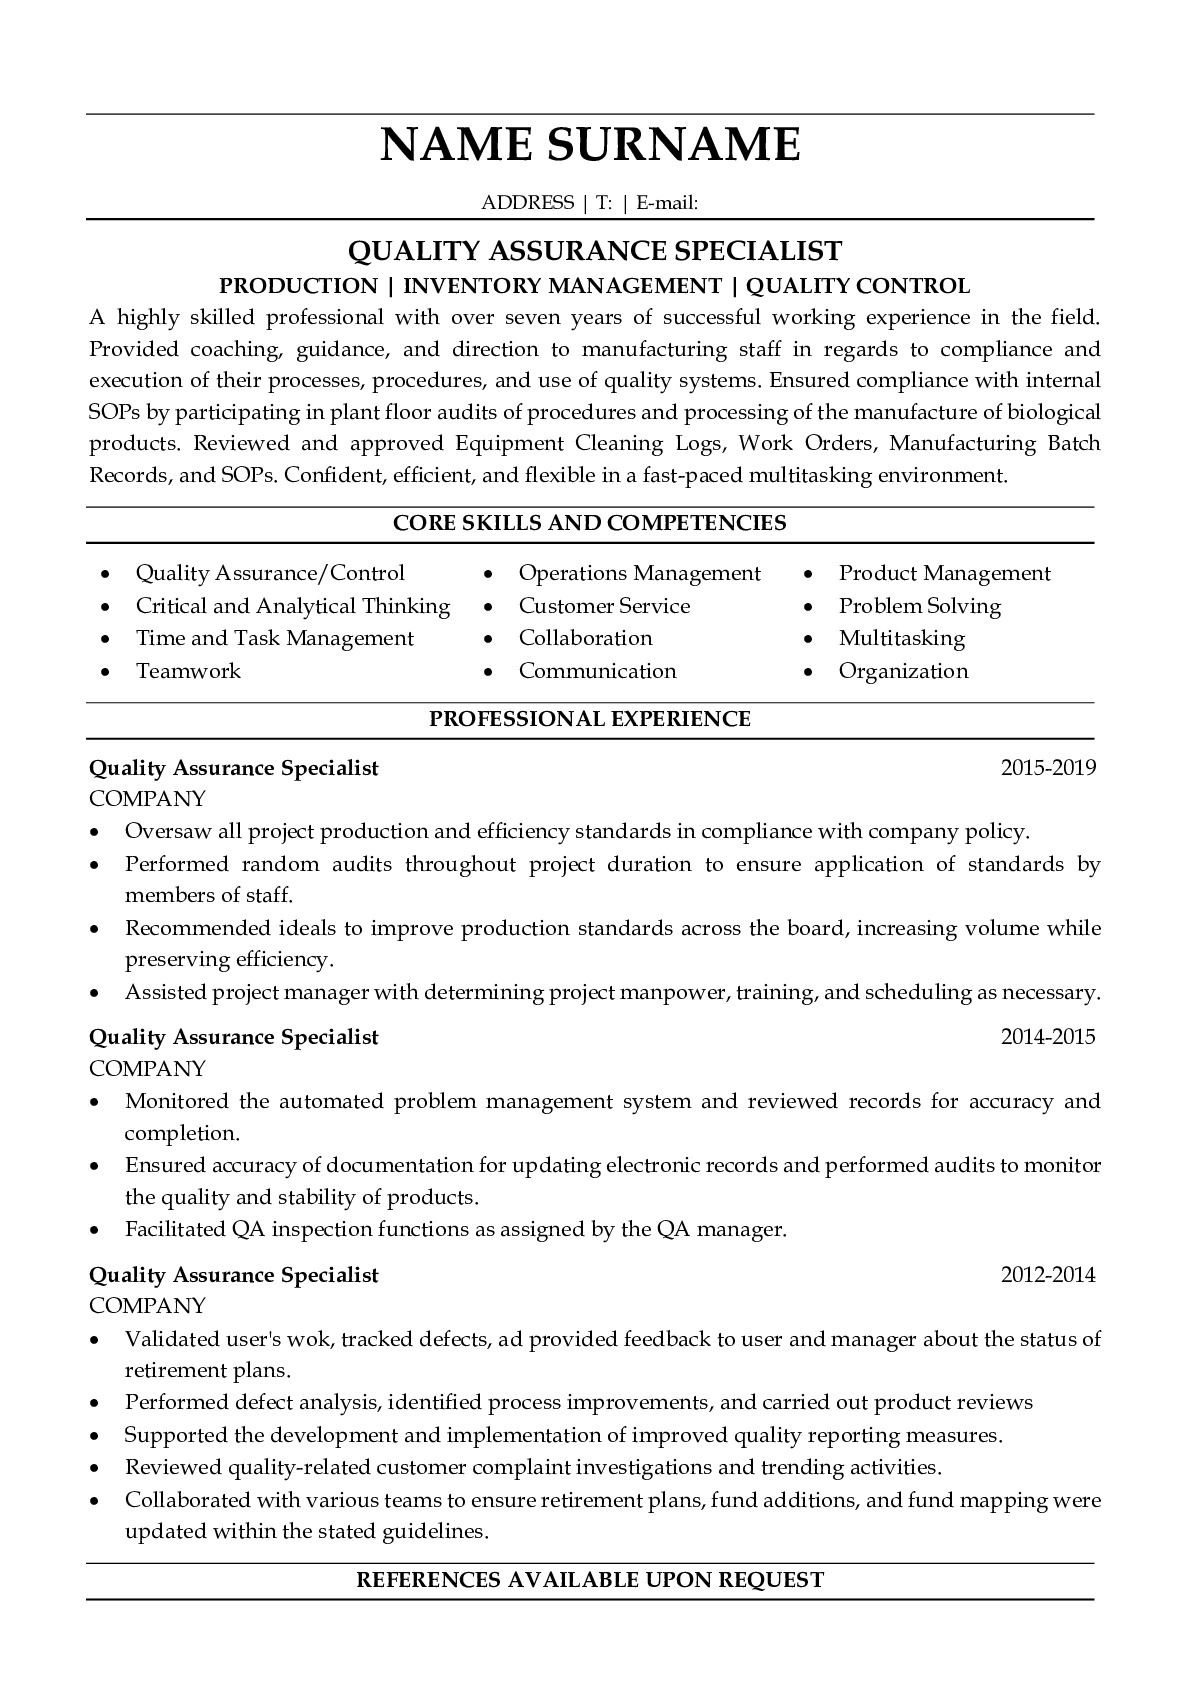 Resume Example for Quality Assurance